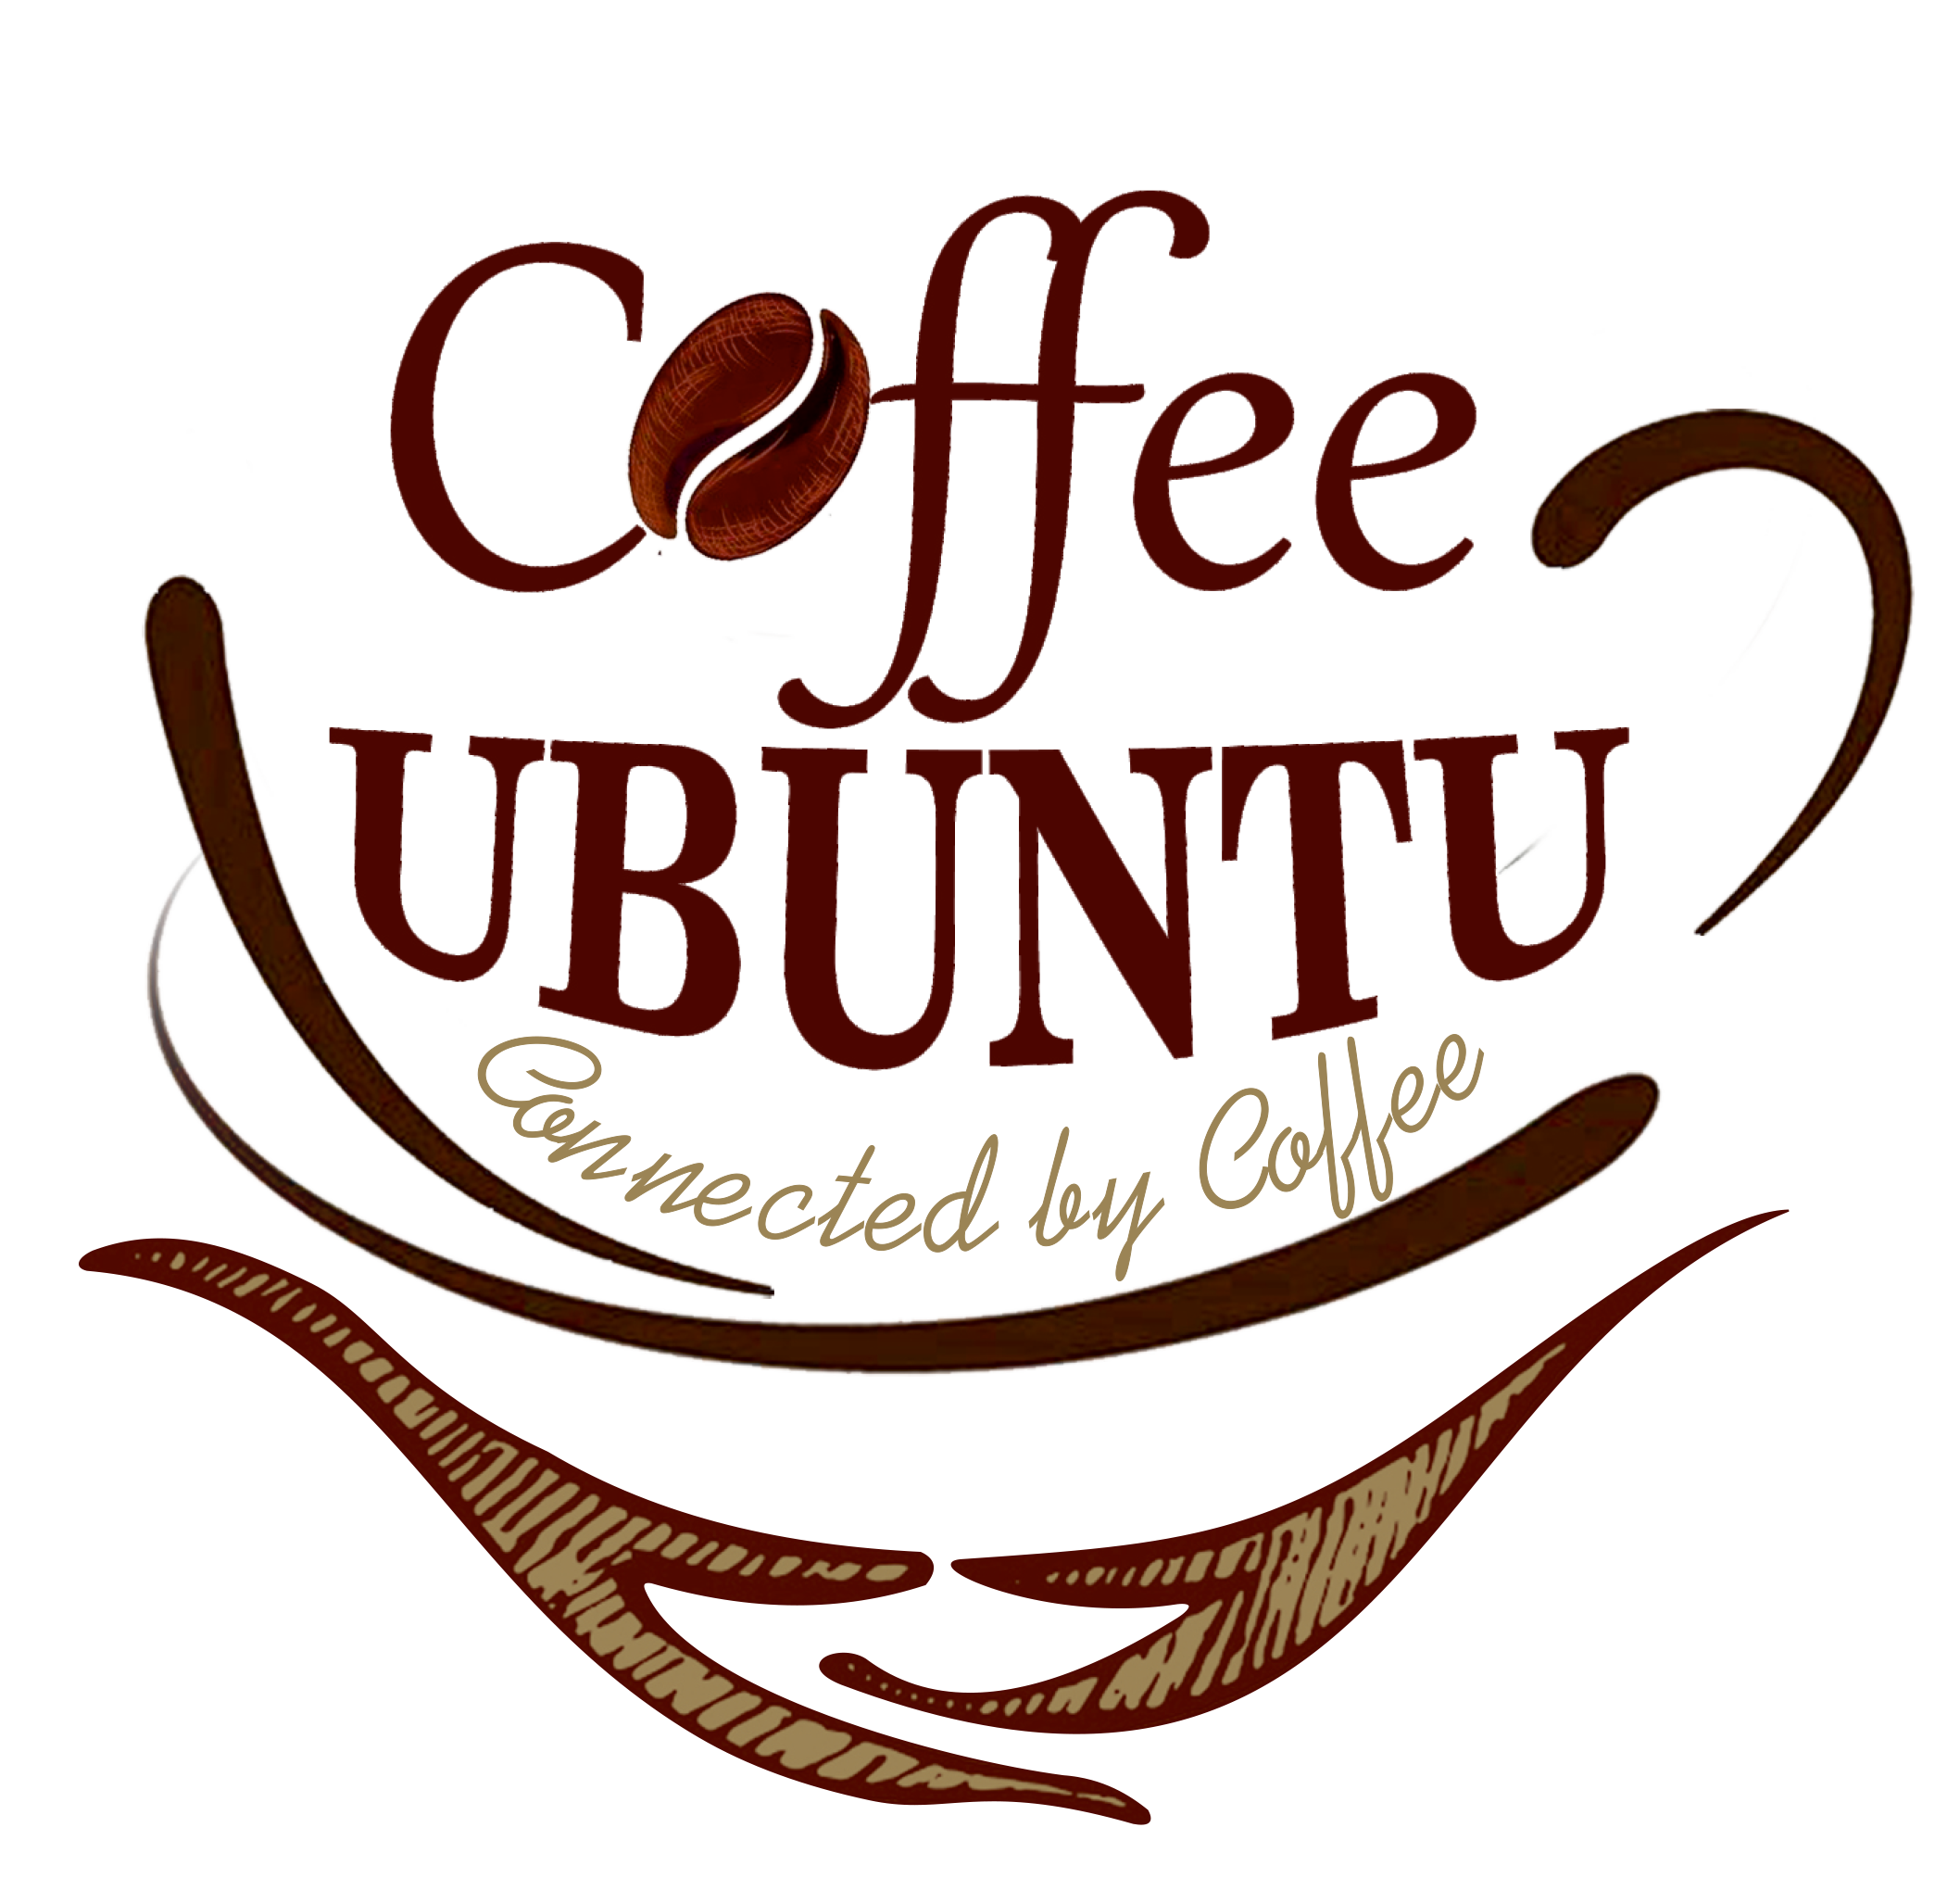 Ubuntu coffee